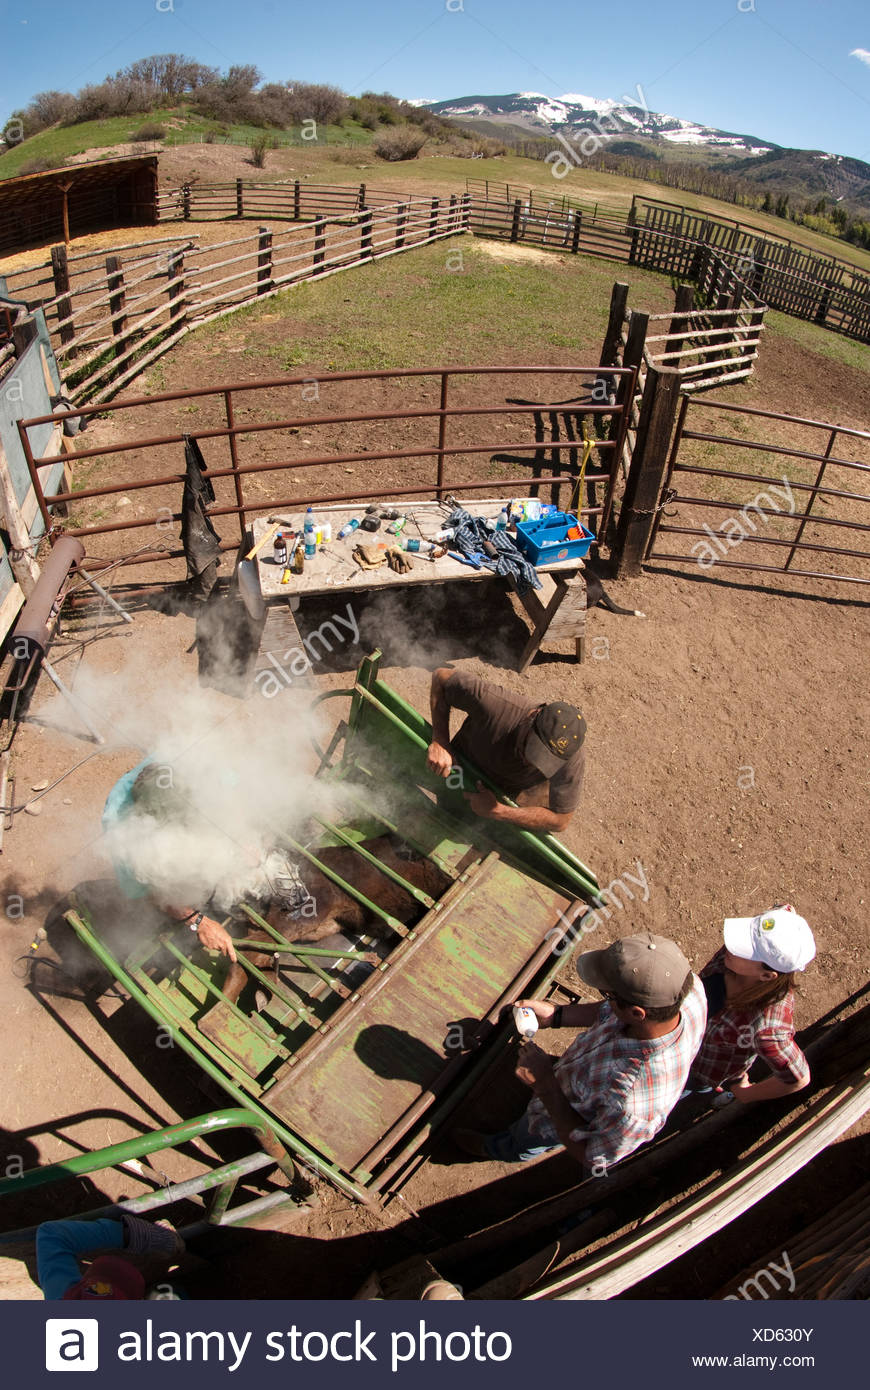 Fish eye view of a calf being branded at a Colorado ranch. - Stock Image